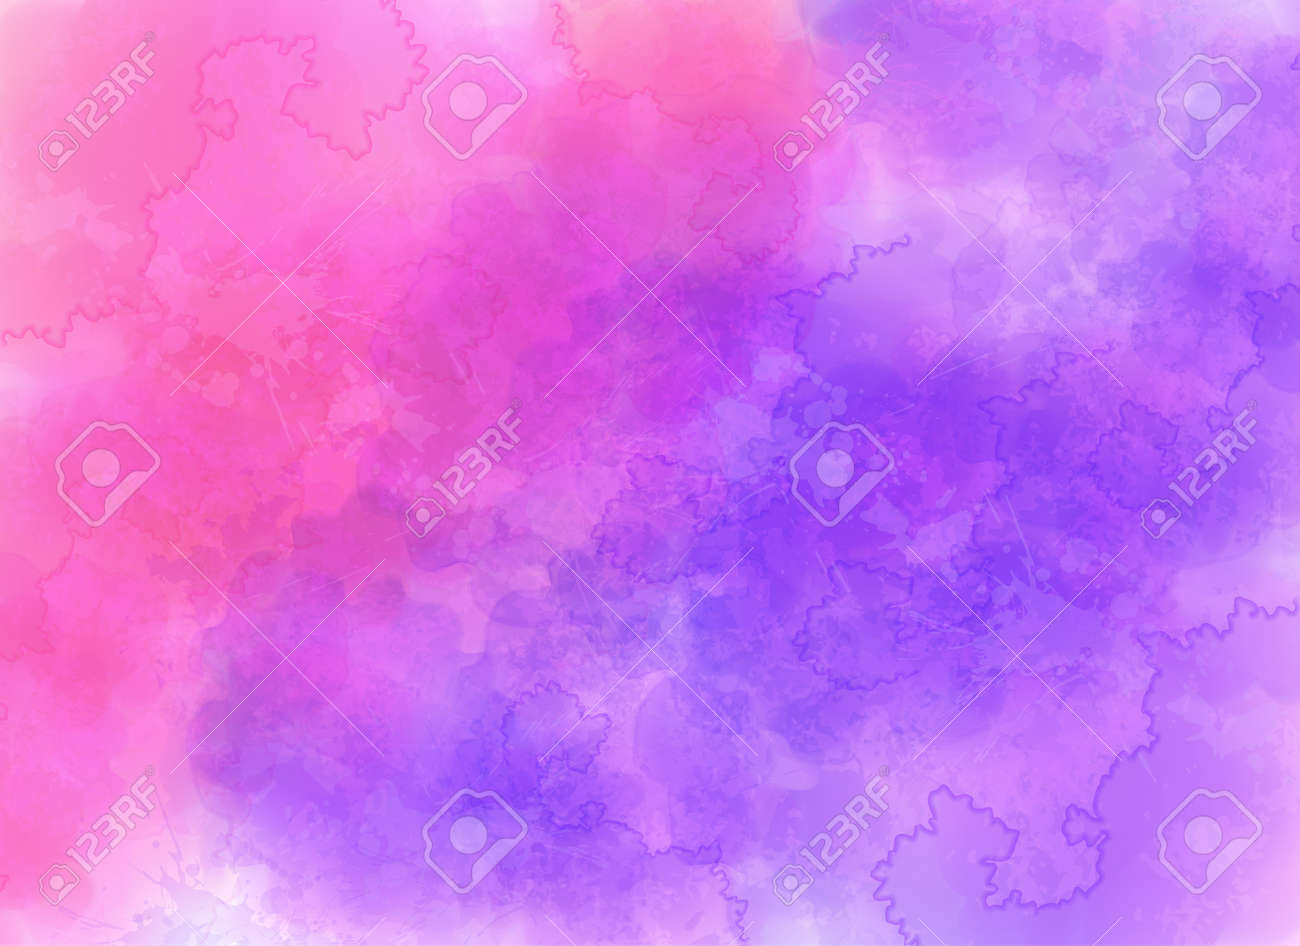 Purple and pink watercolor effect vector background royalty free purple and pink watercolor effect vector background stock vector 44338319 junglespirit